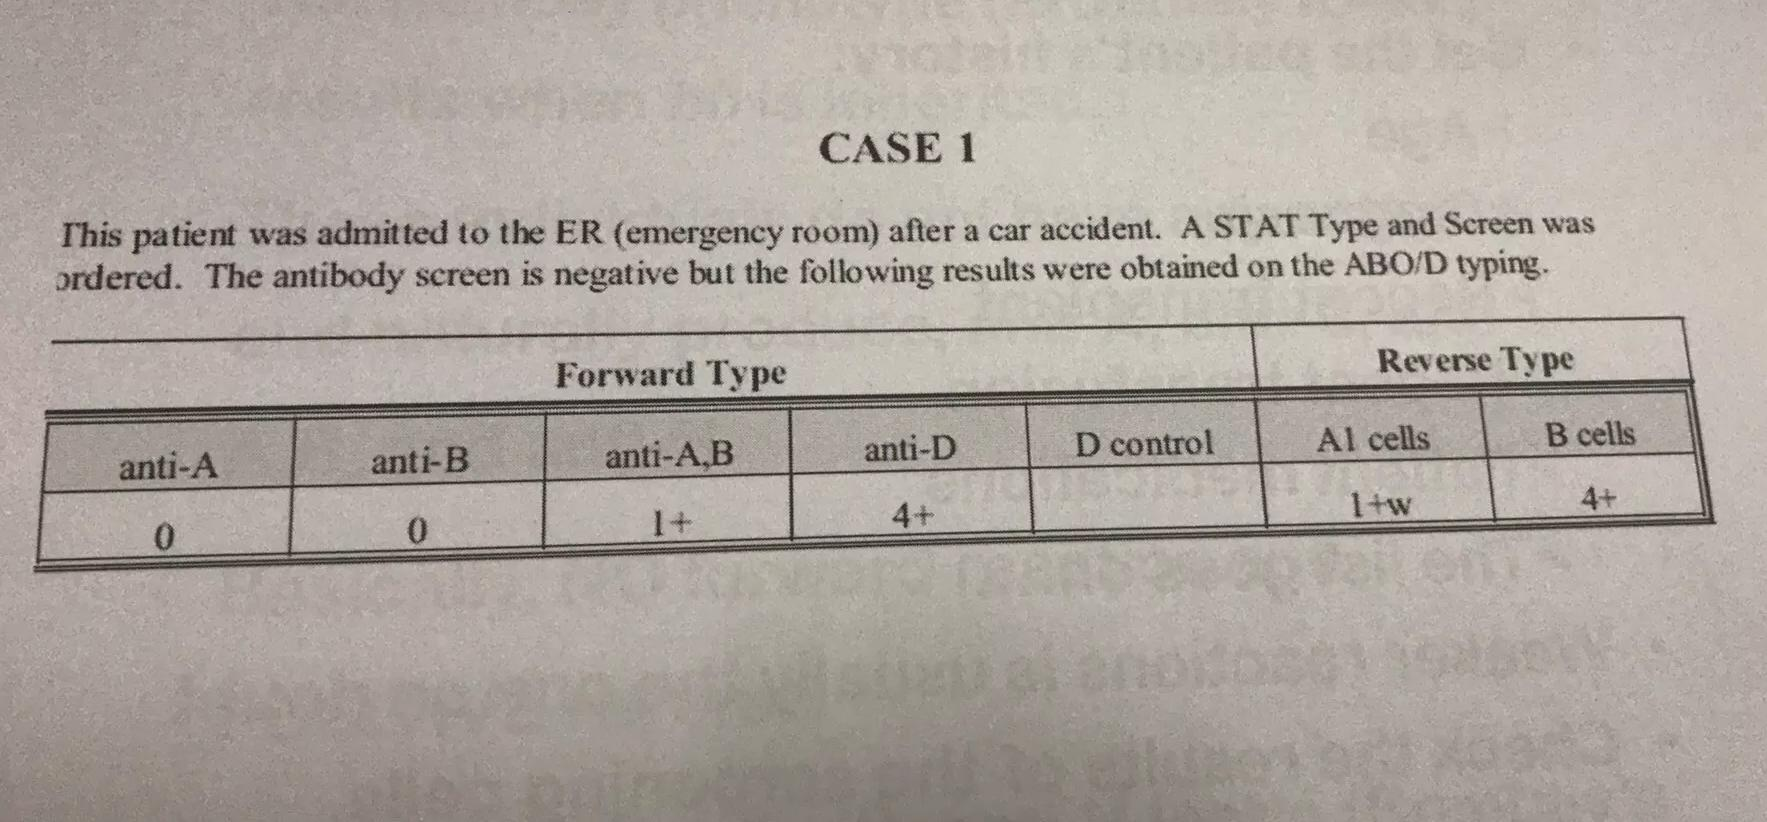 CASE 1 This patient was admitted to the ER (emergency room) after a car accident. A STAT Type and Screen was ordered. The ant